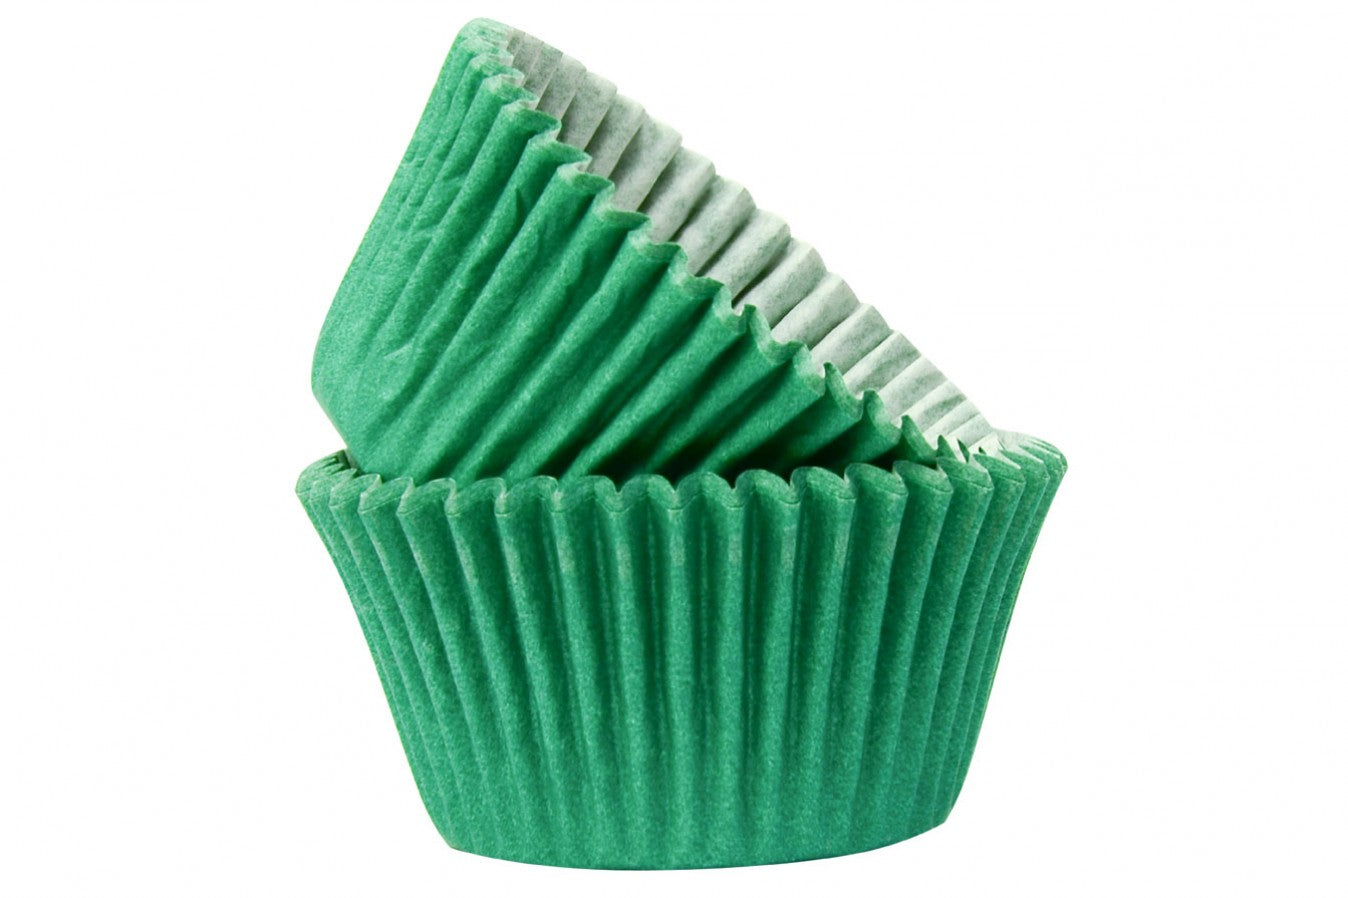 Professional Quality Cupcake Cases: Dark Green 50pk